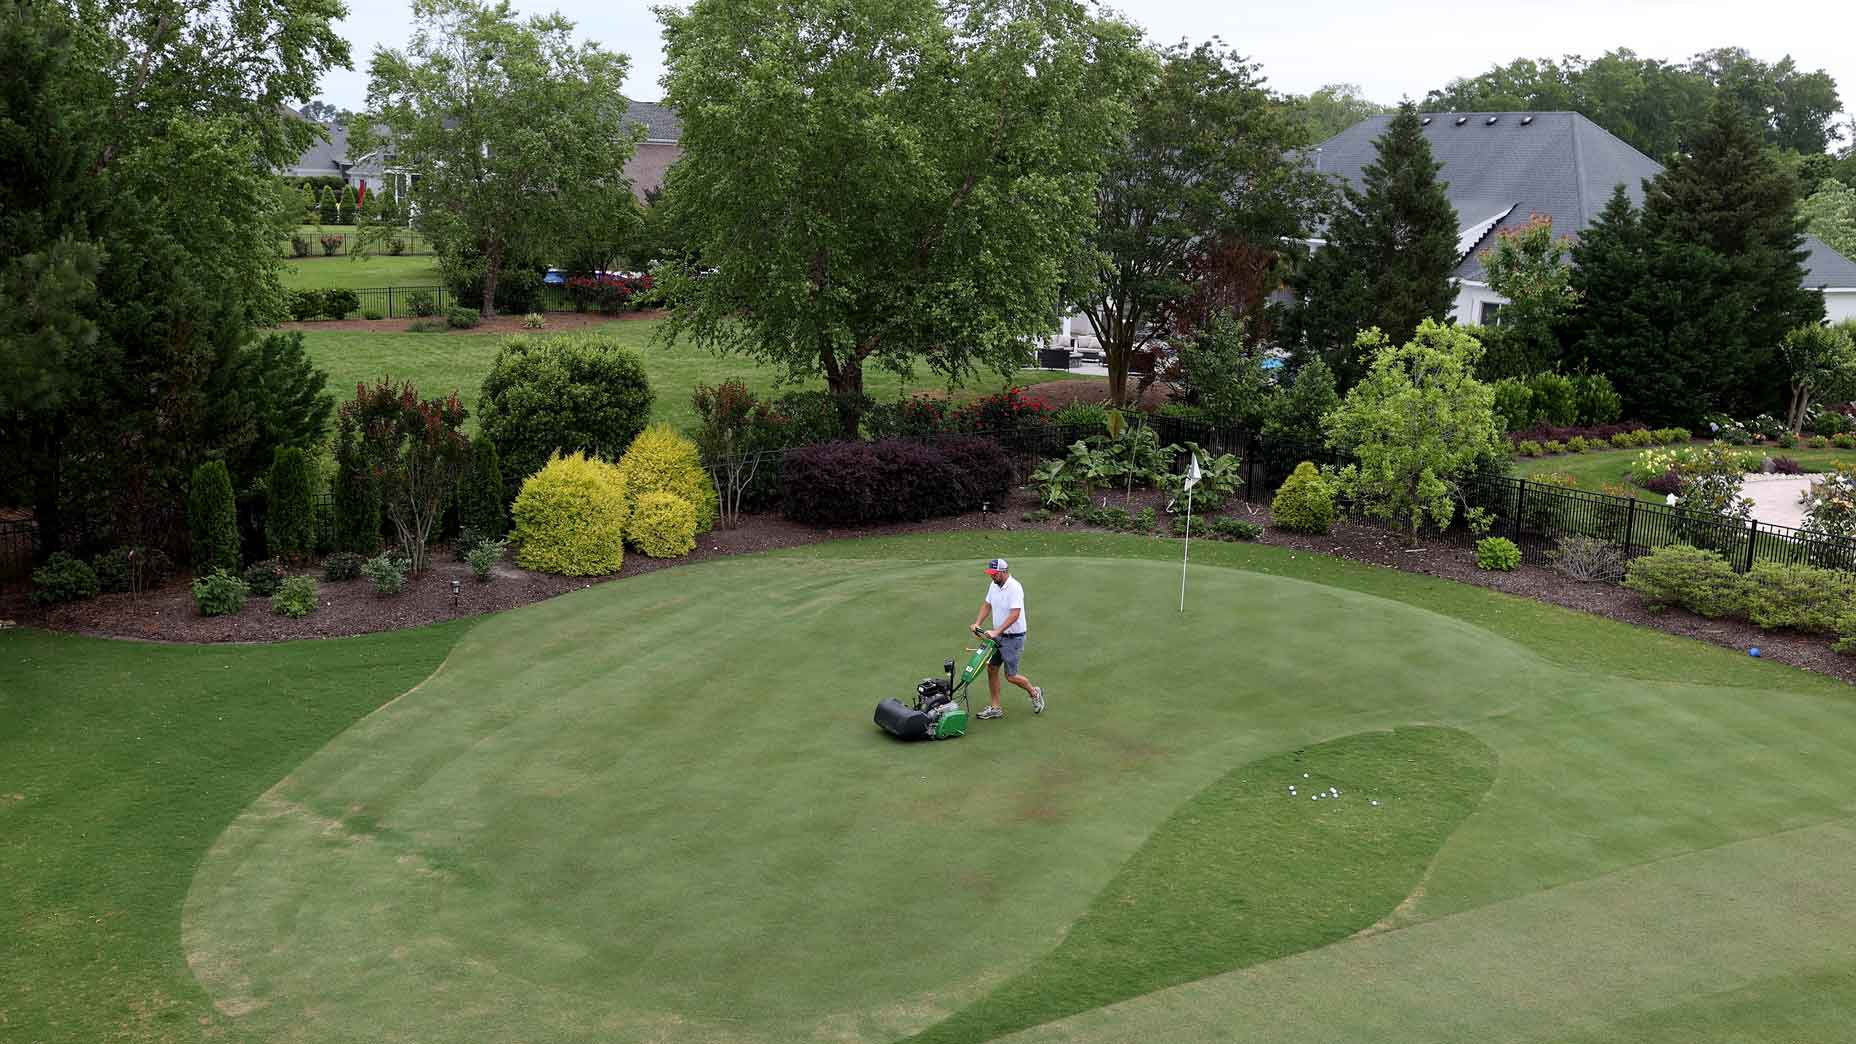 How To Make Your Own Backyard Putting Green In Just 8 Steps